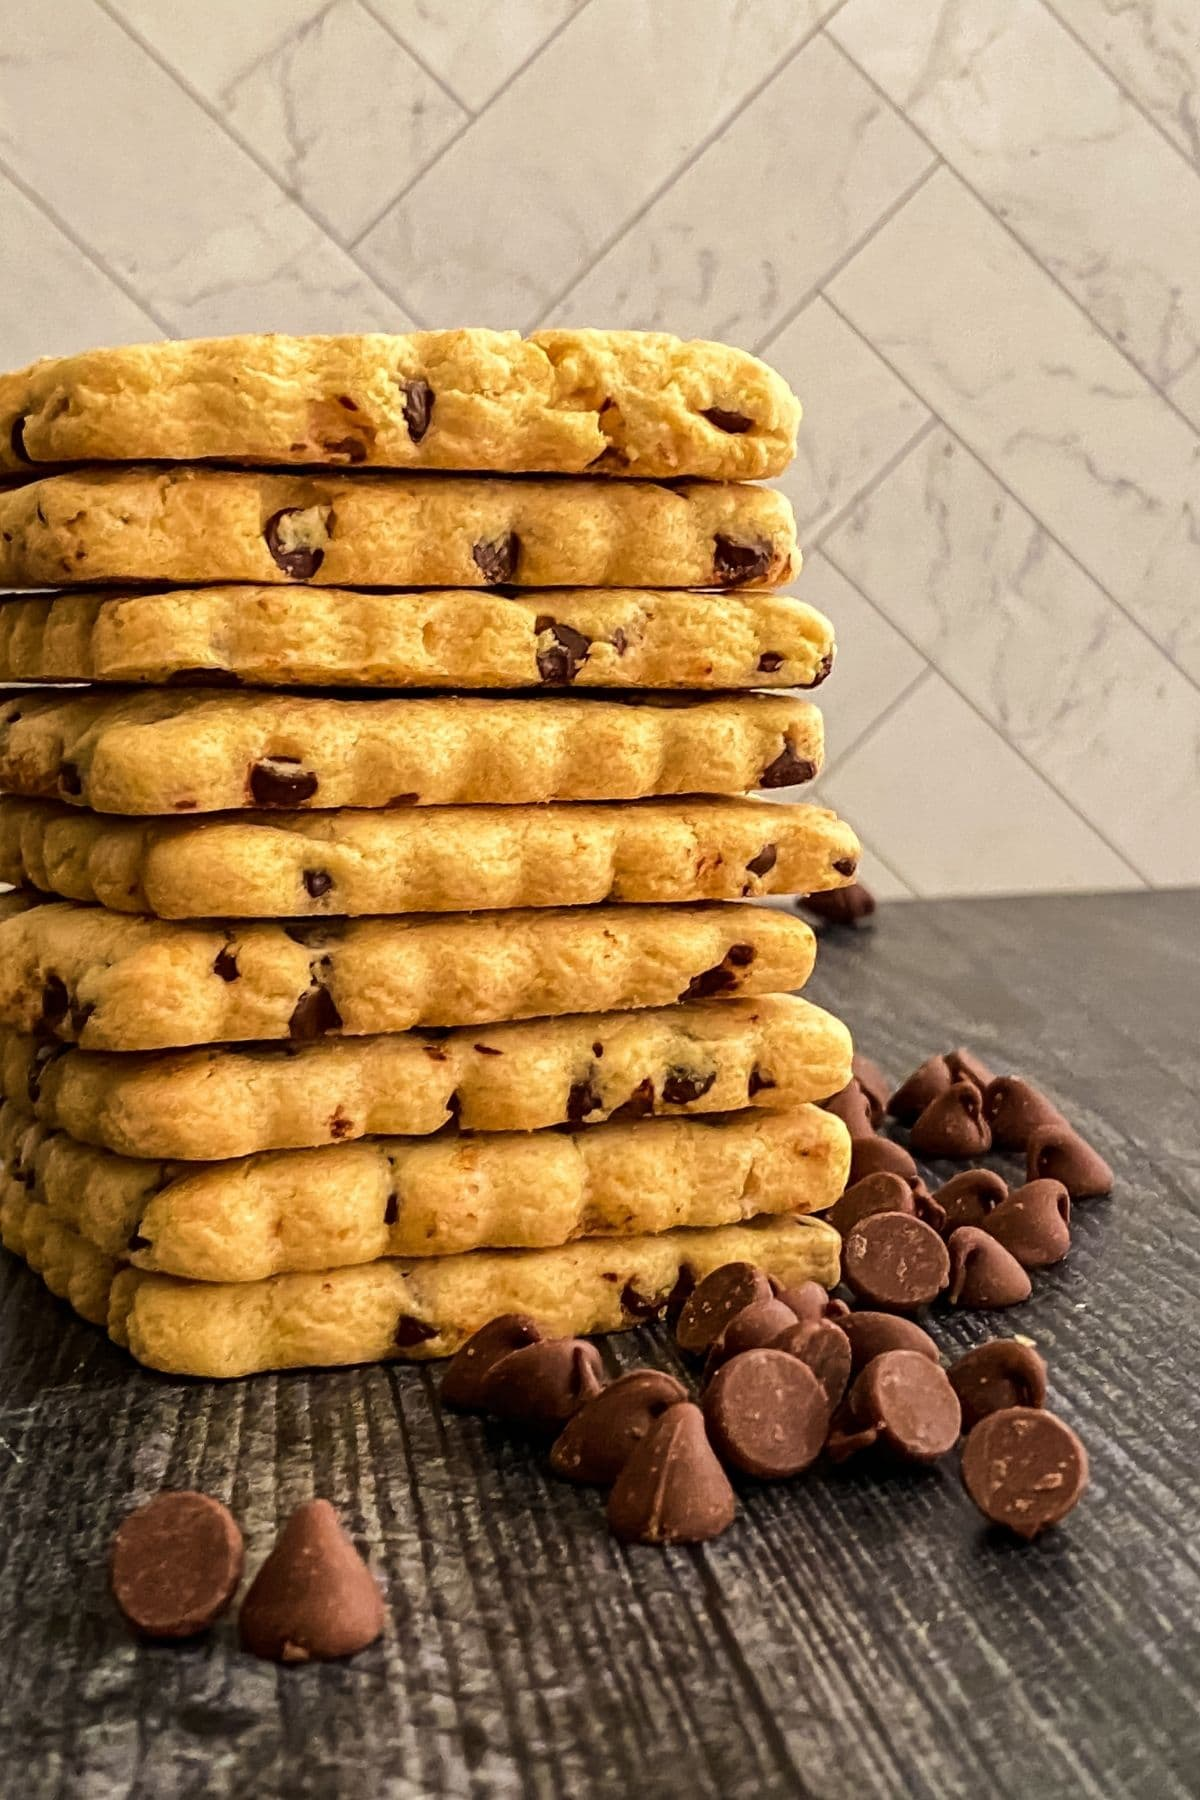 Stack of cookies on black table with chips beside